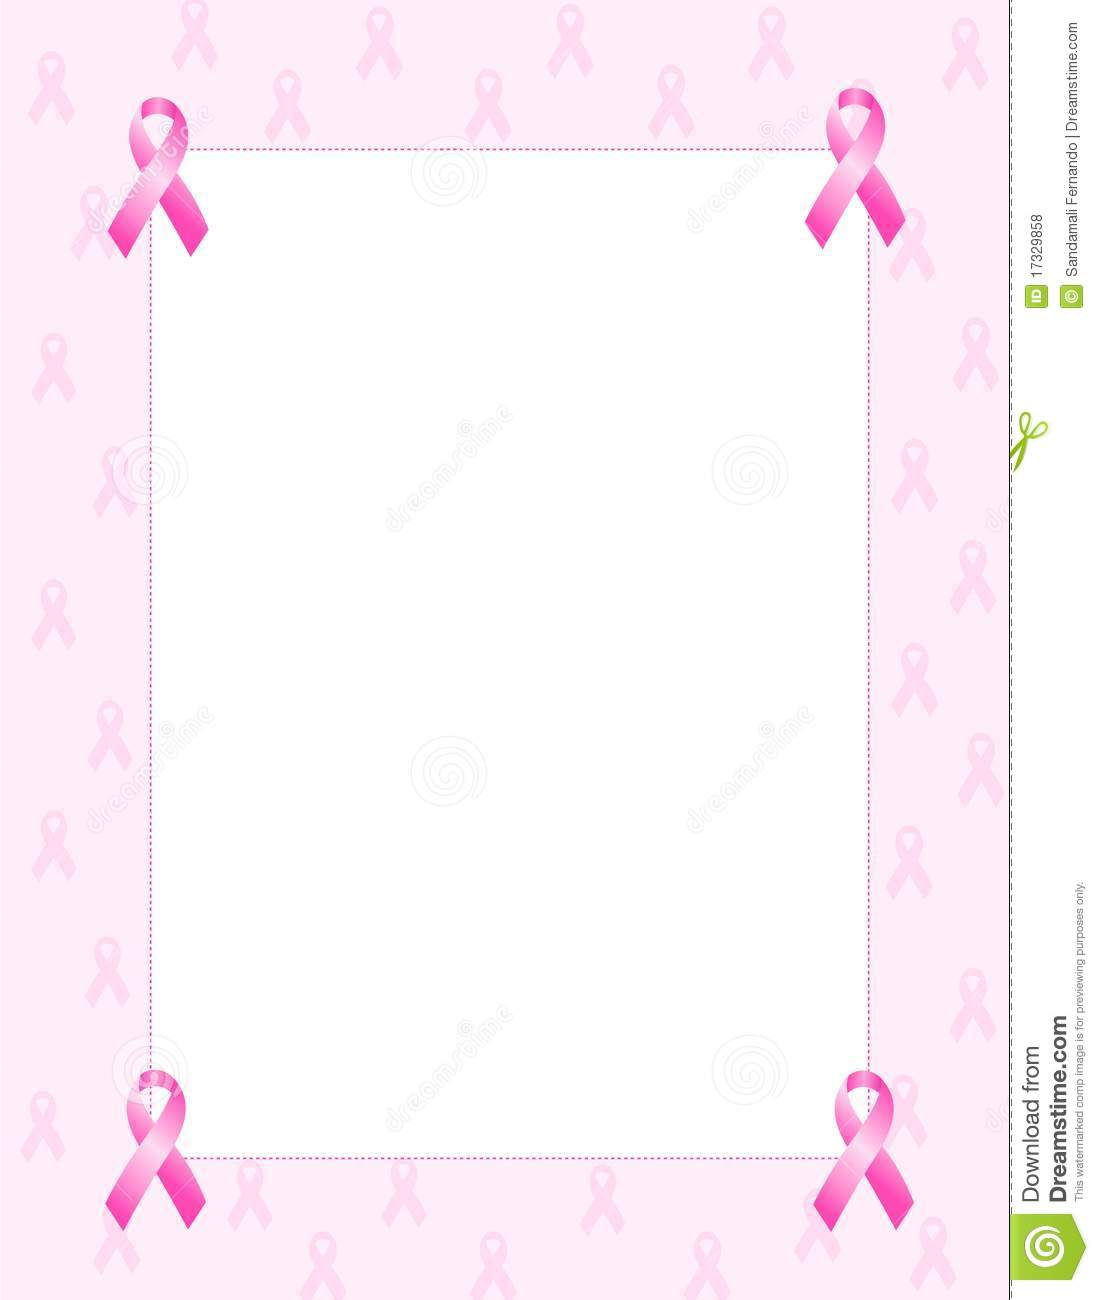 Breast cancer awareness ribbons background / border. cute pink ribbons ...